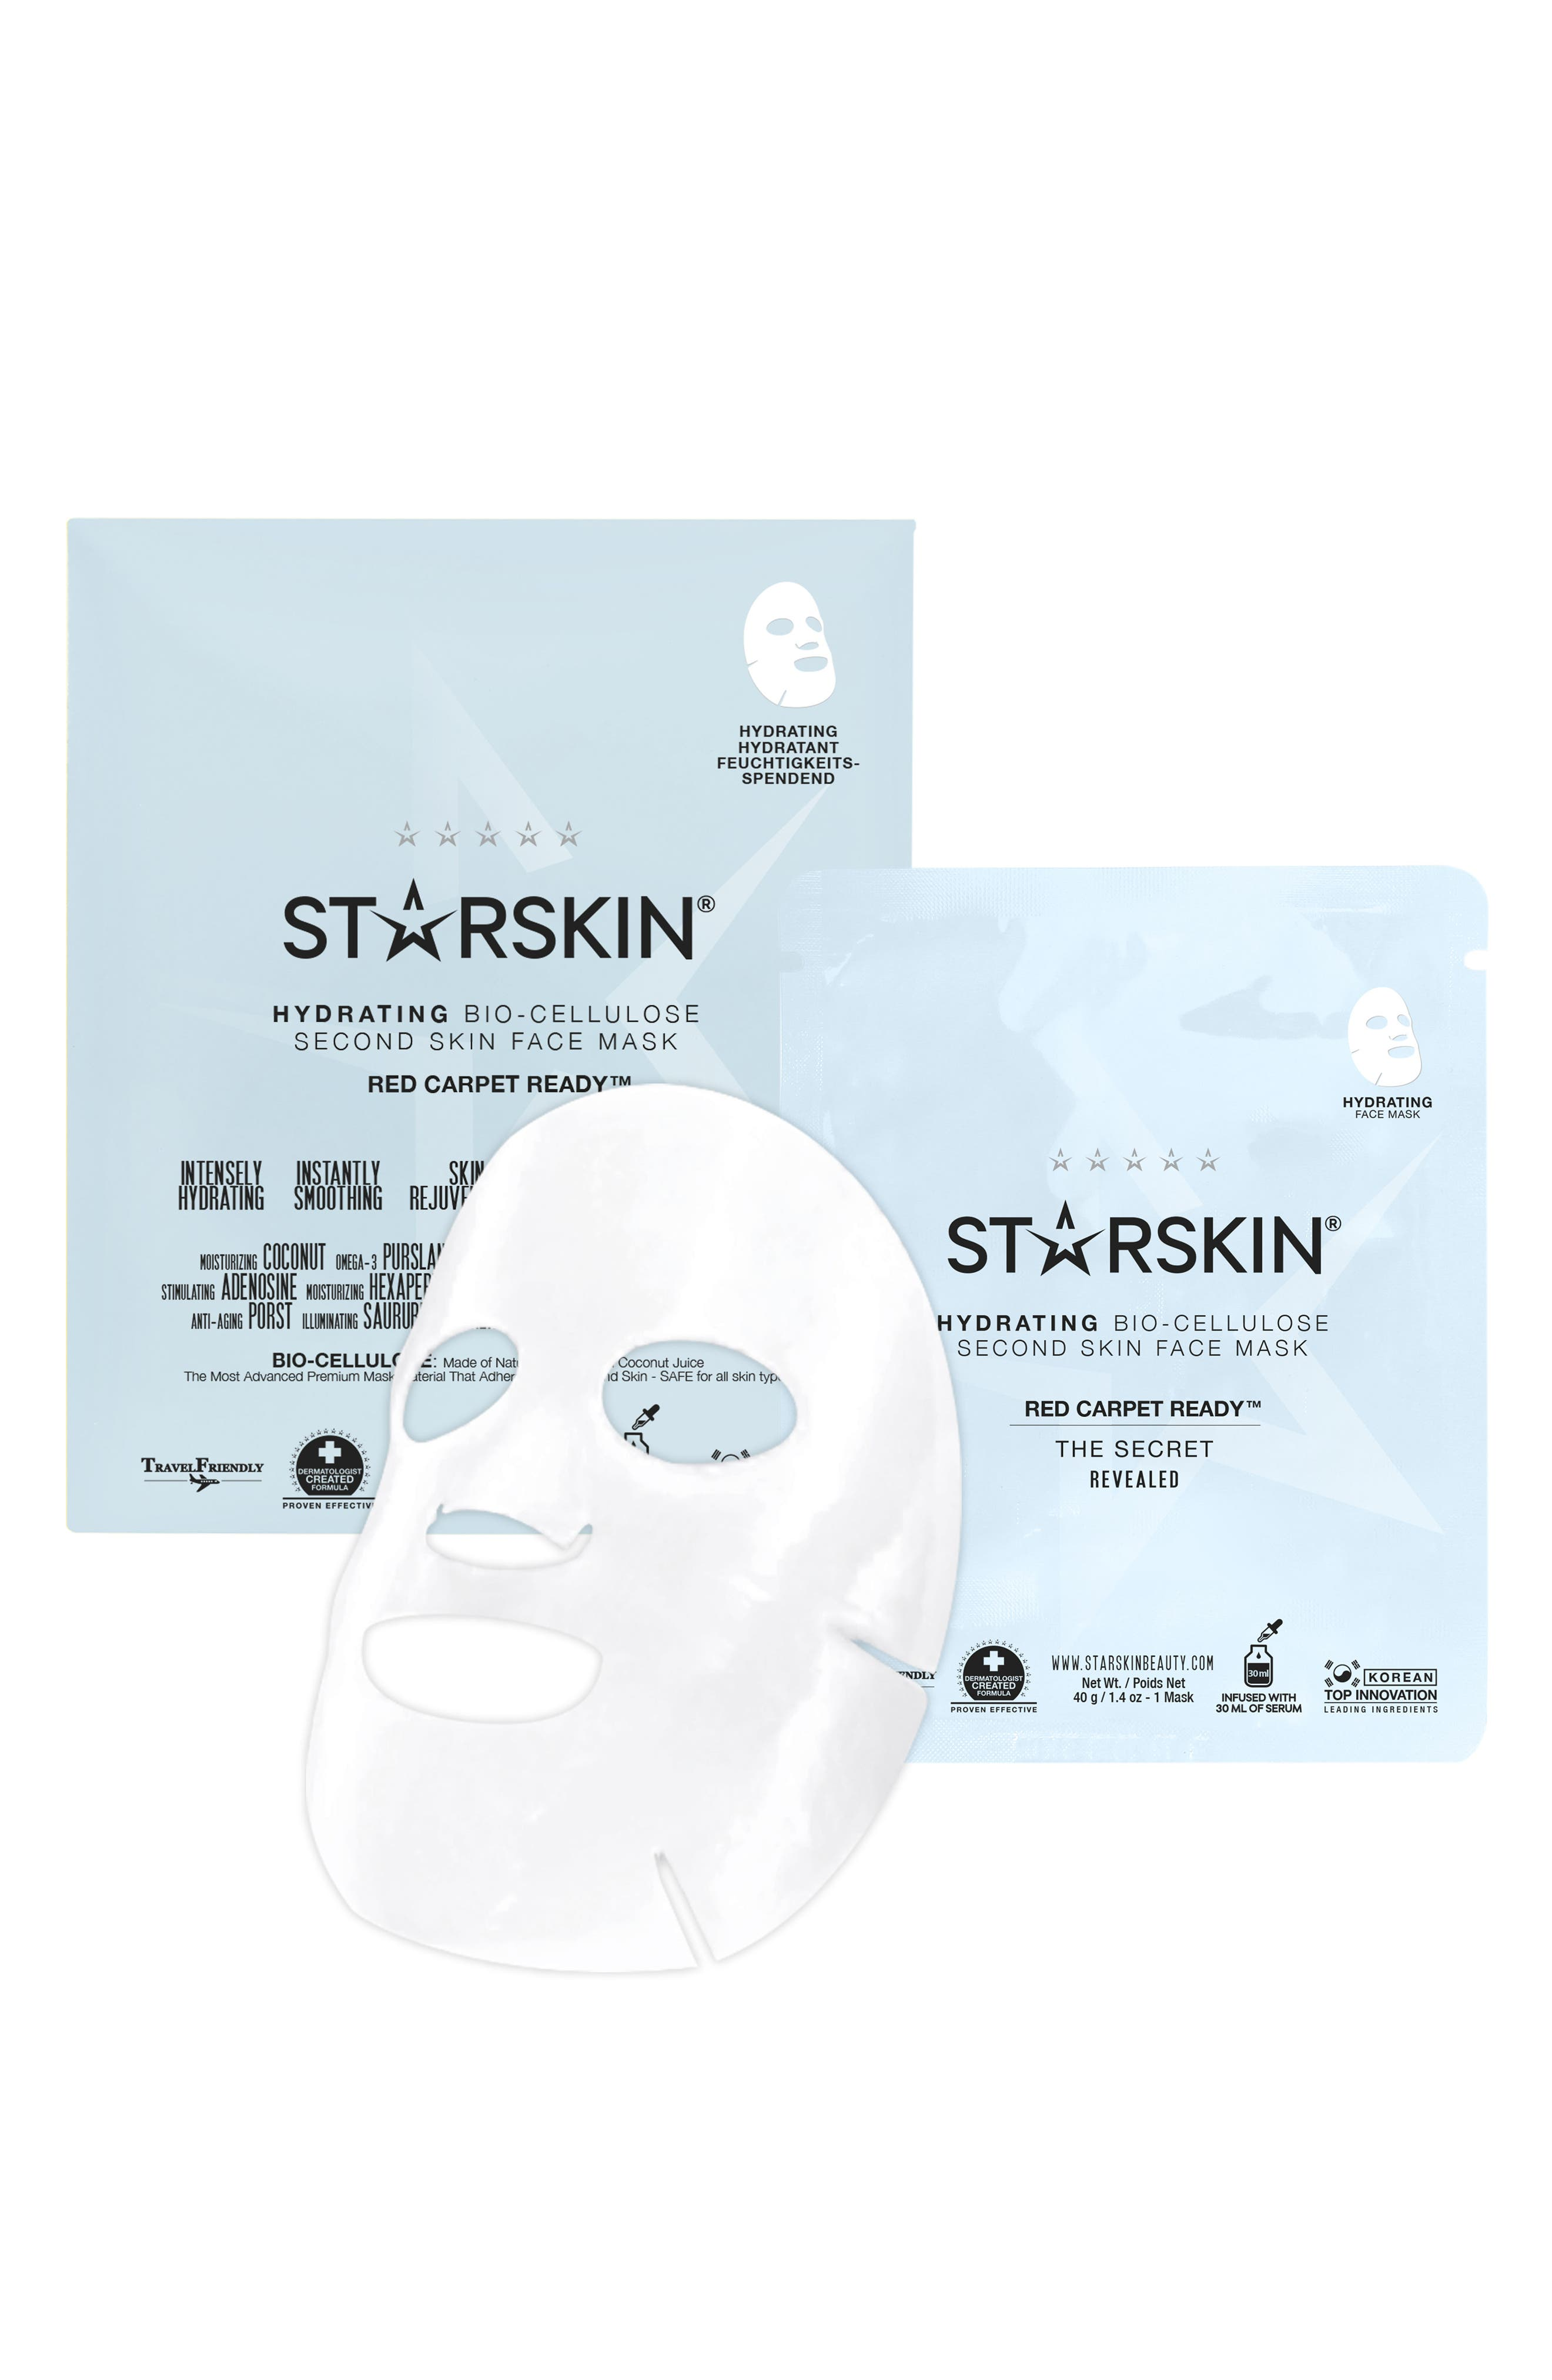 Red Carpet Ready Hydrating Bio-Cellulose Second Skin Face Mask,                         Main,                         color, NO COLOR